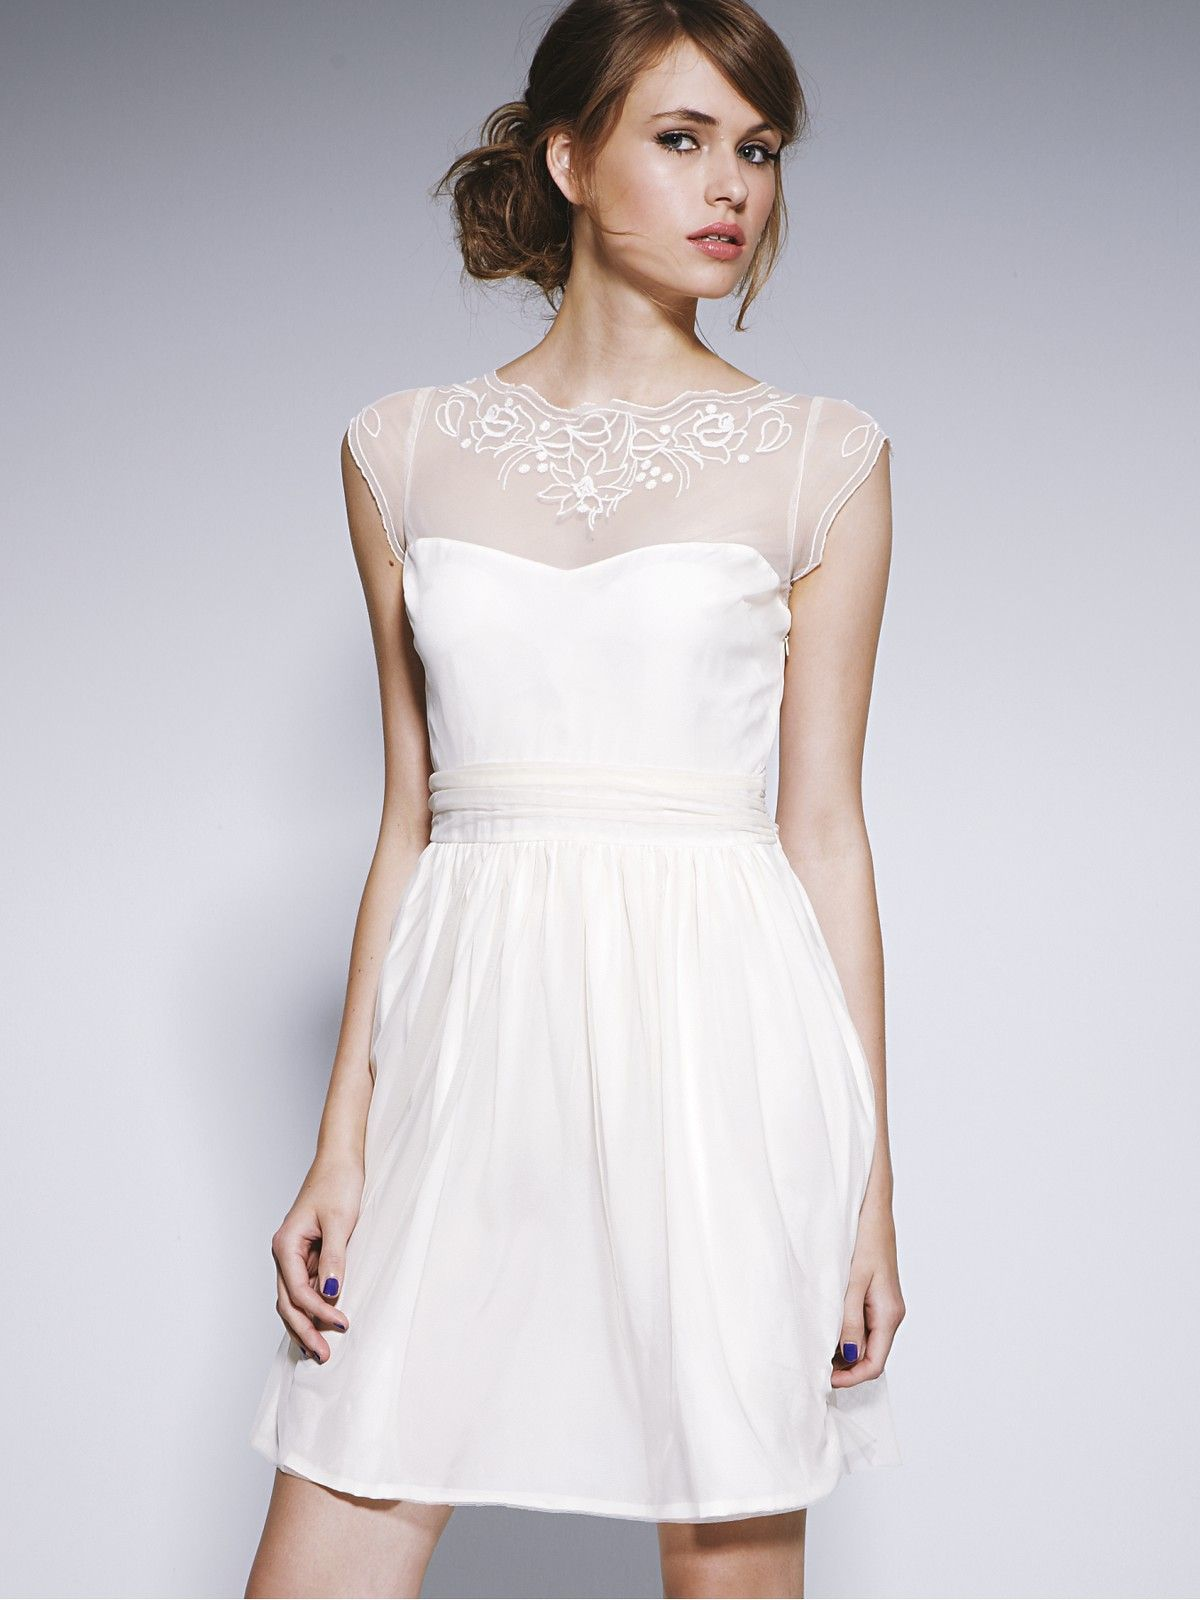 Wedding dresses department stores  Official Littlewoods Site  Online Shopping Department Store for